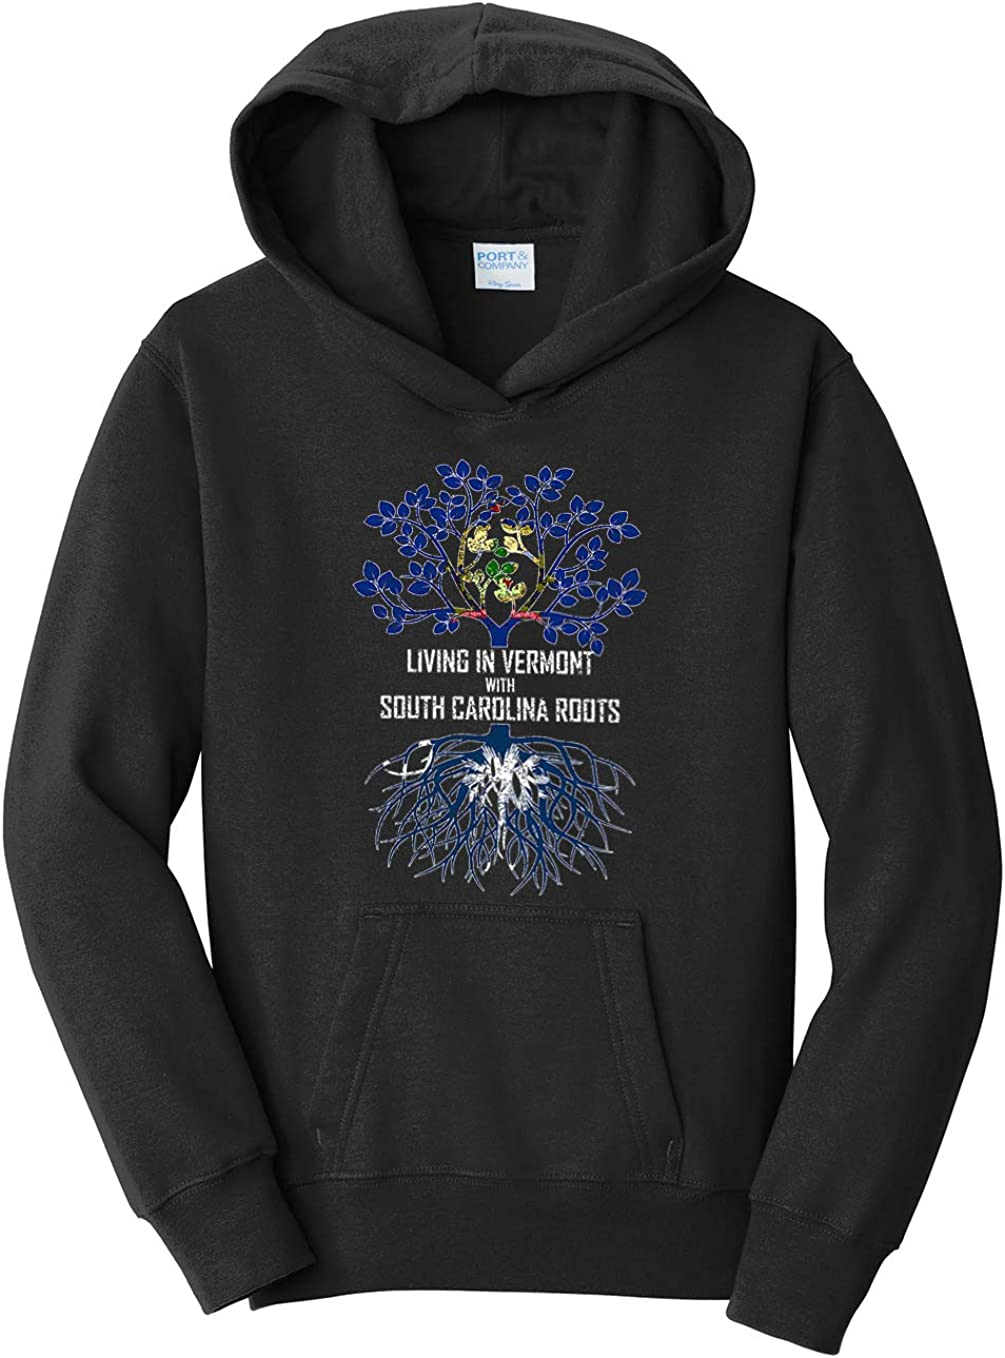 Tenacitee Girls Living in Vermont with South Carolina Roots Hooded Sweatshirt